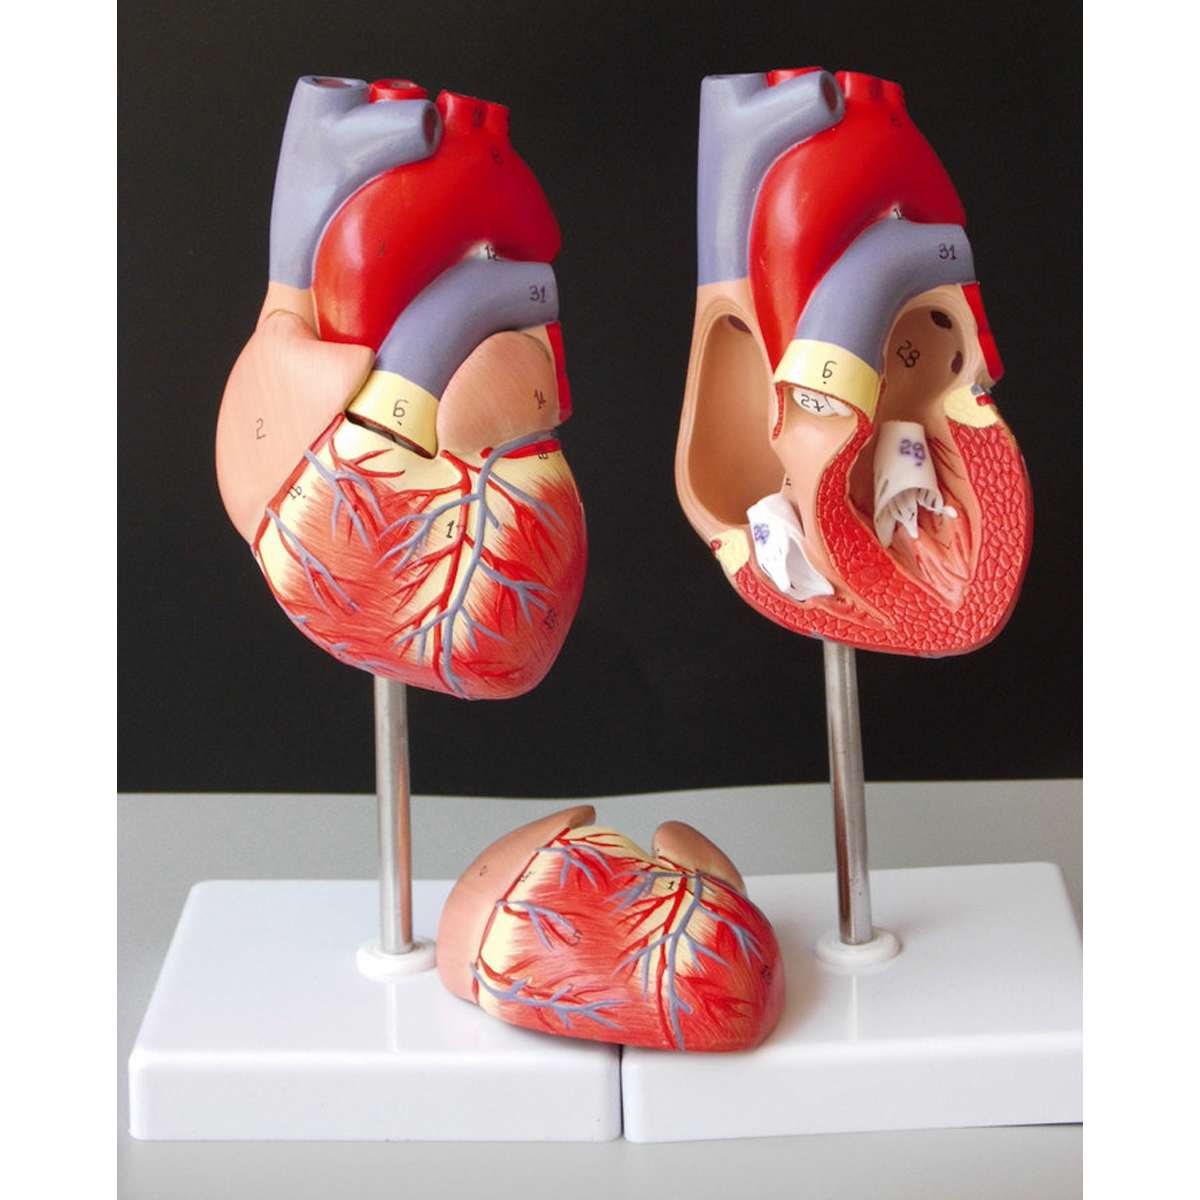 Human Heart Anatomical Anatomy Teaching Model Viscera Medical Organ Model Emulational + Stand Medical Science Teaching Resources